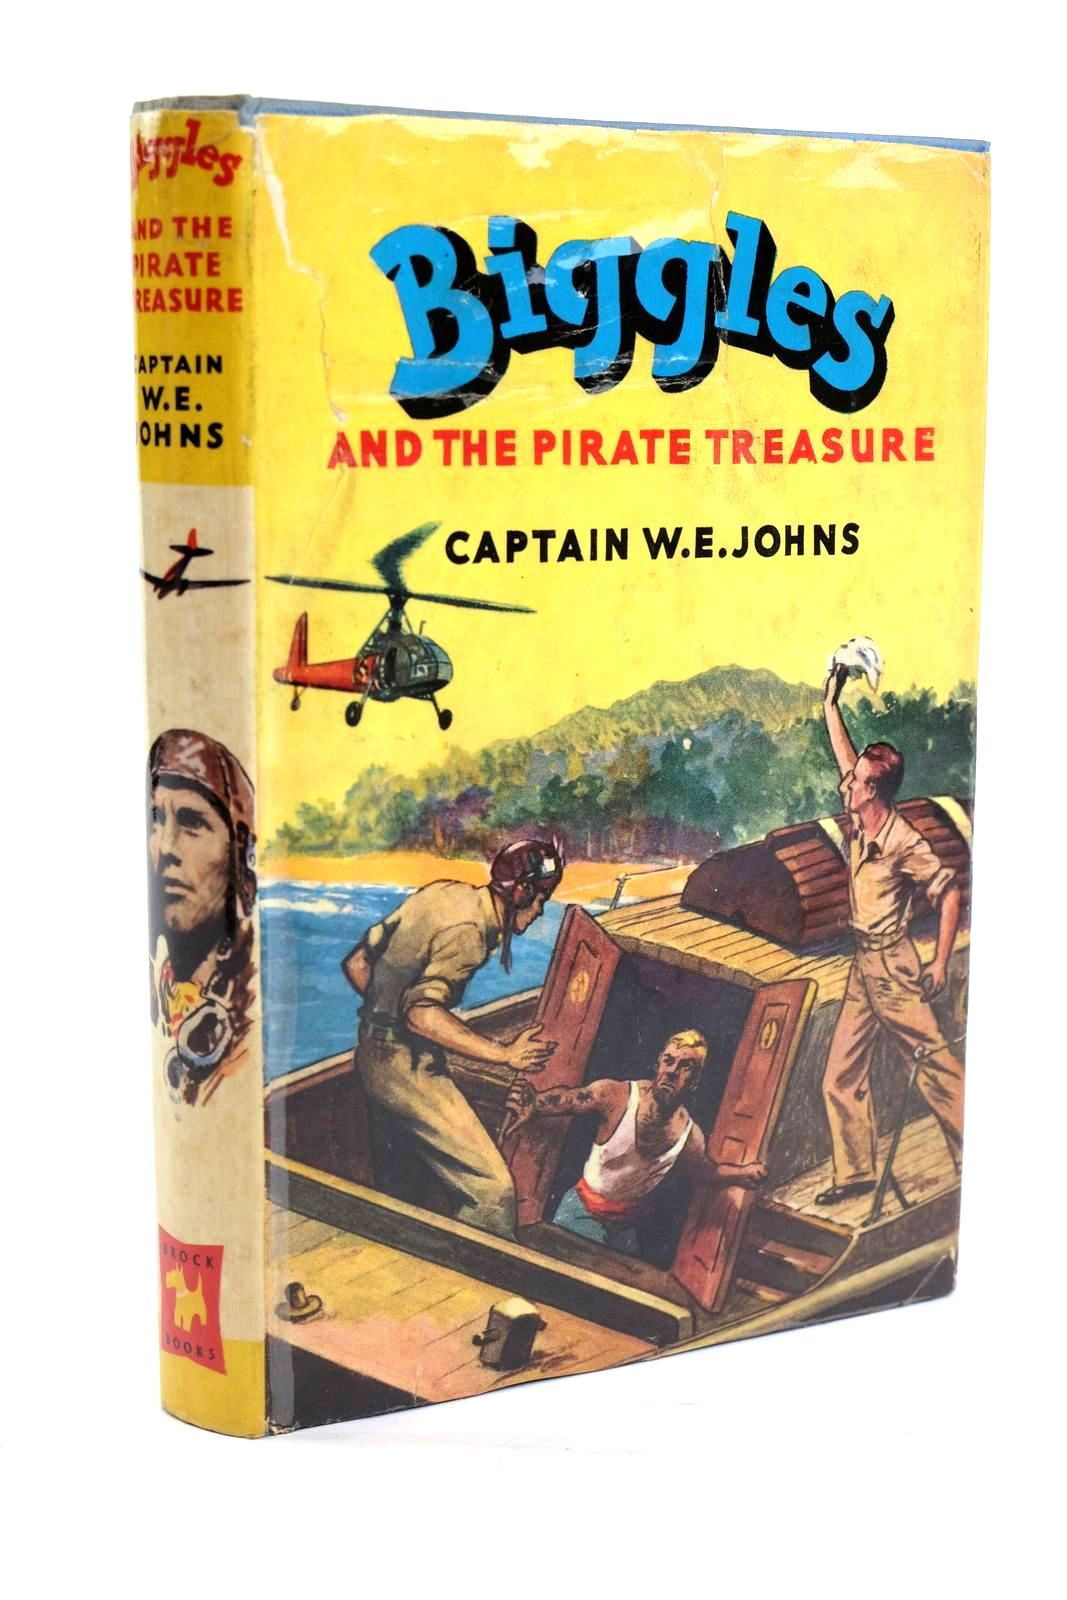 Photo of BIGGLES AND THE PIRATE TREASURE written by Johns, W.E. illustrated by Stead, Leslie published by Brockhampton Press (STOCK CODE: 1319720)  for sale by Stella & Rose's Books